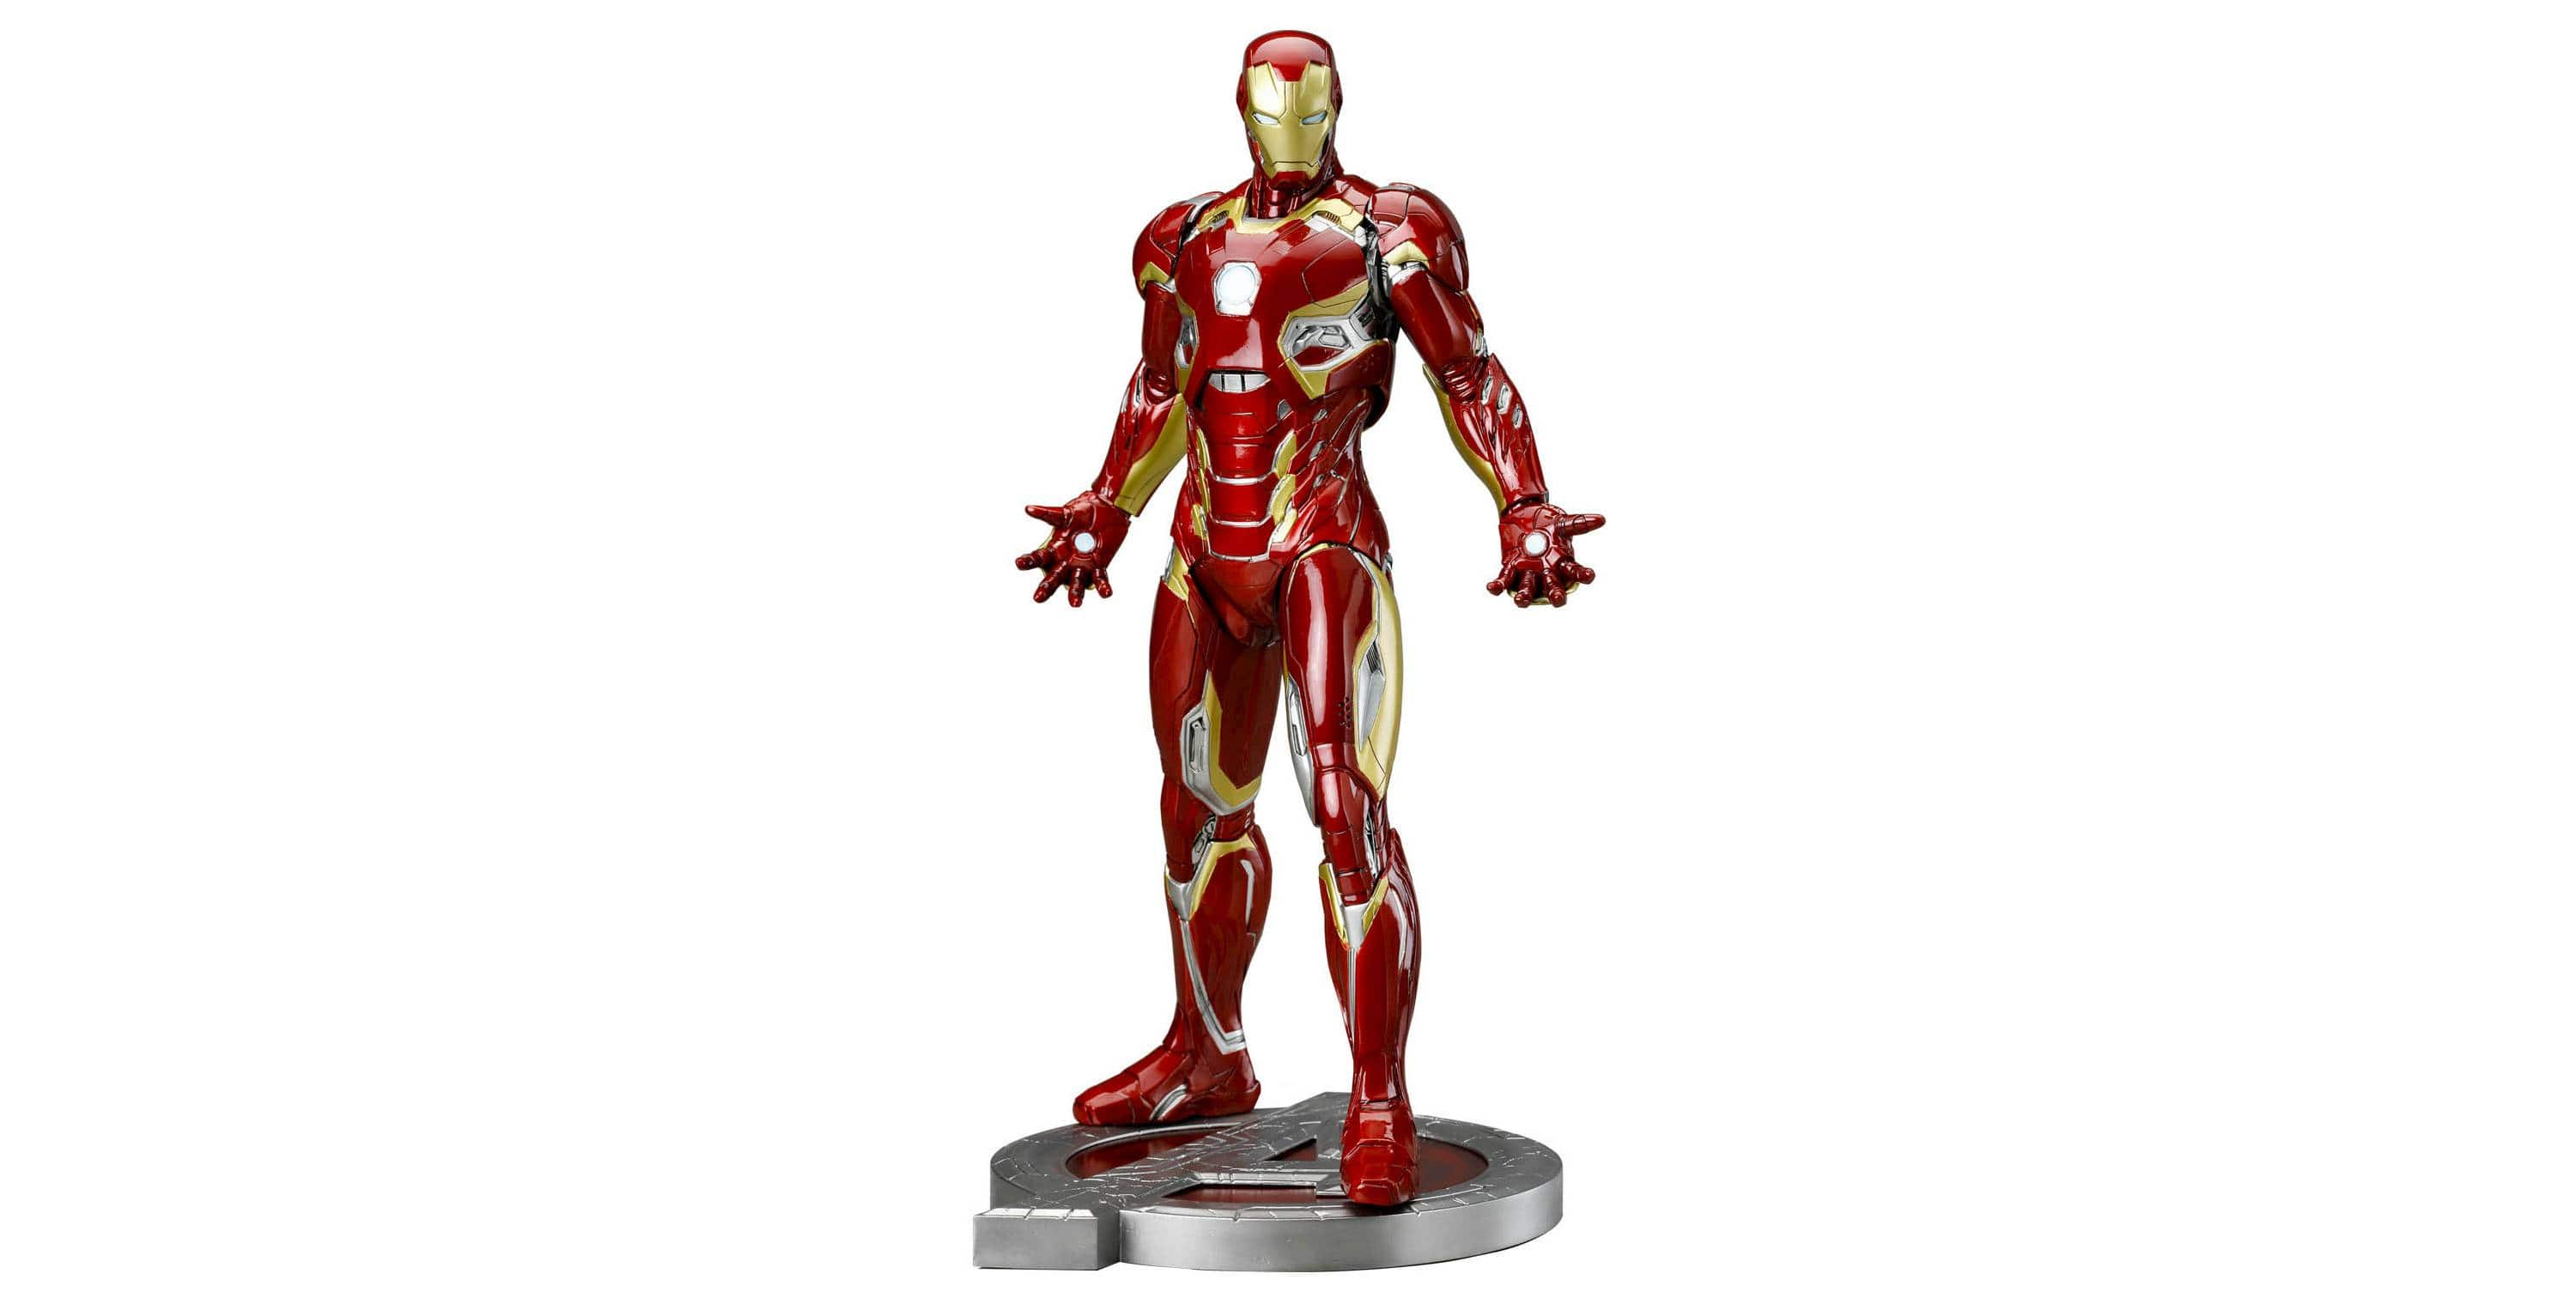 Target ARTFX+ Statues on clearance